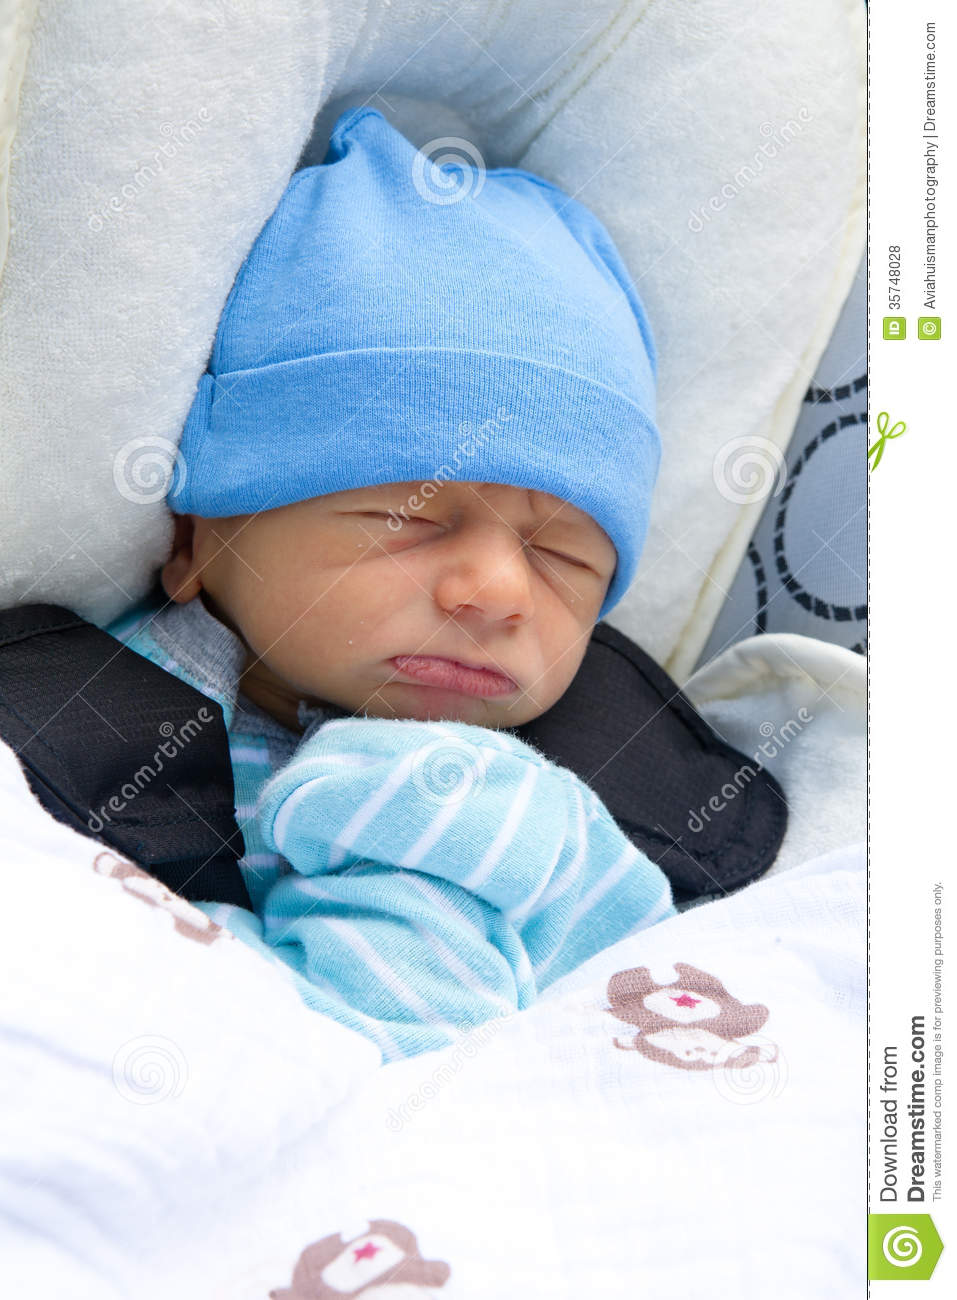 A newborn baby napping in a stroller wearing a blue hat and mittens. a970cdf46